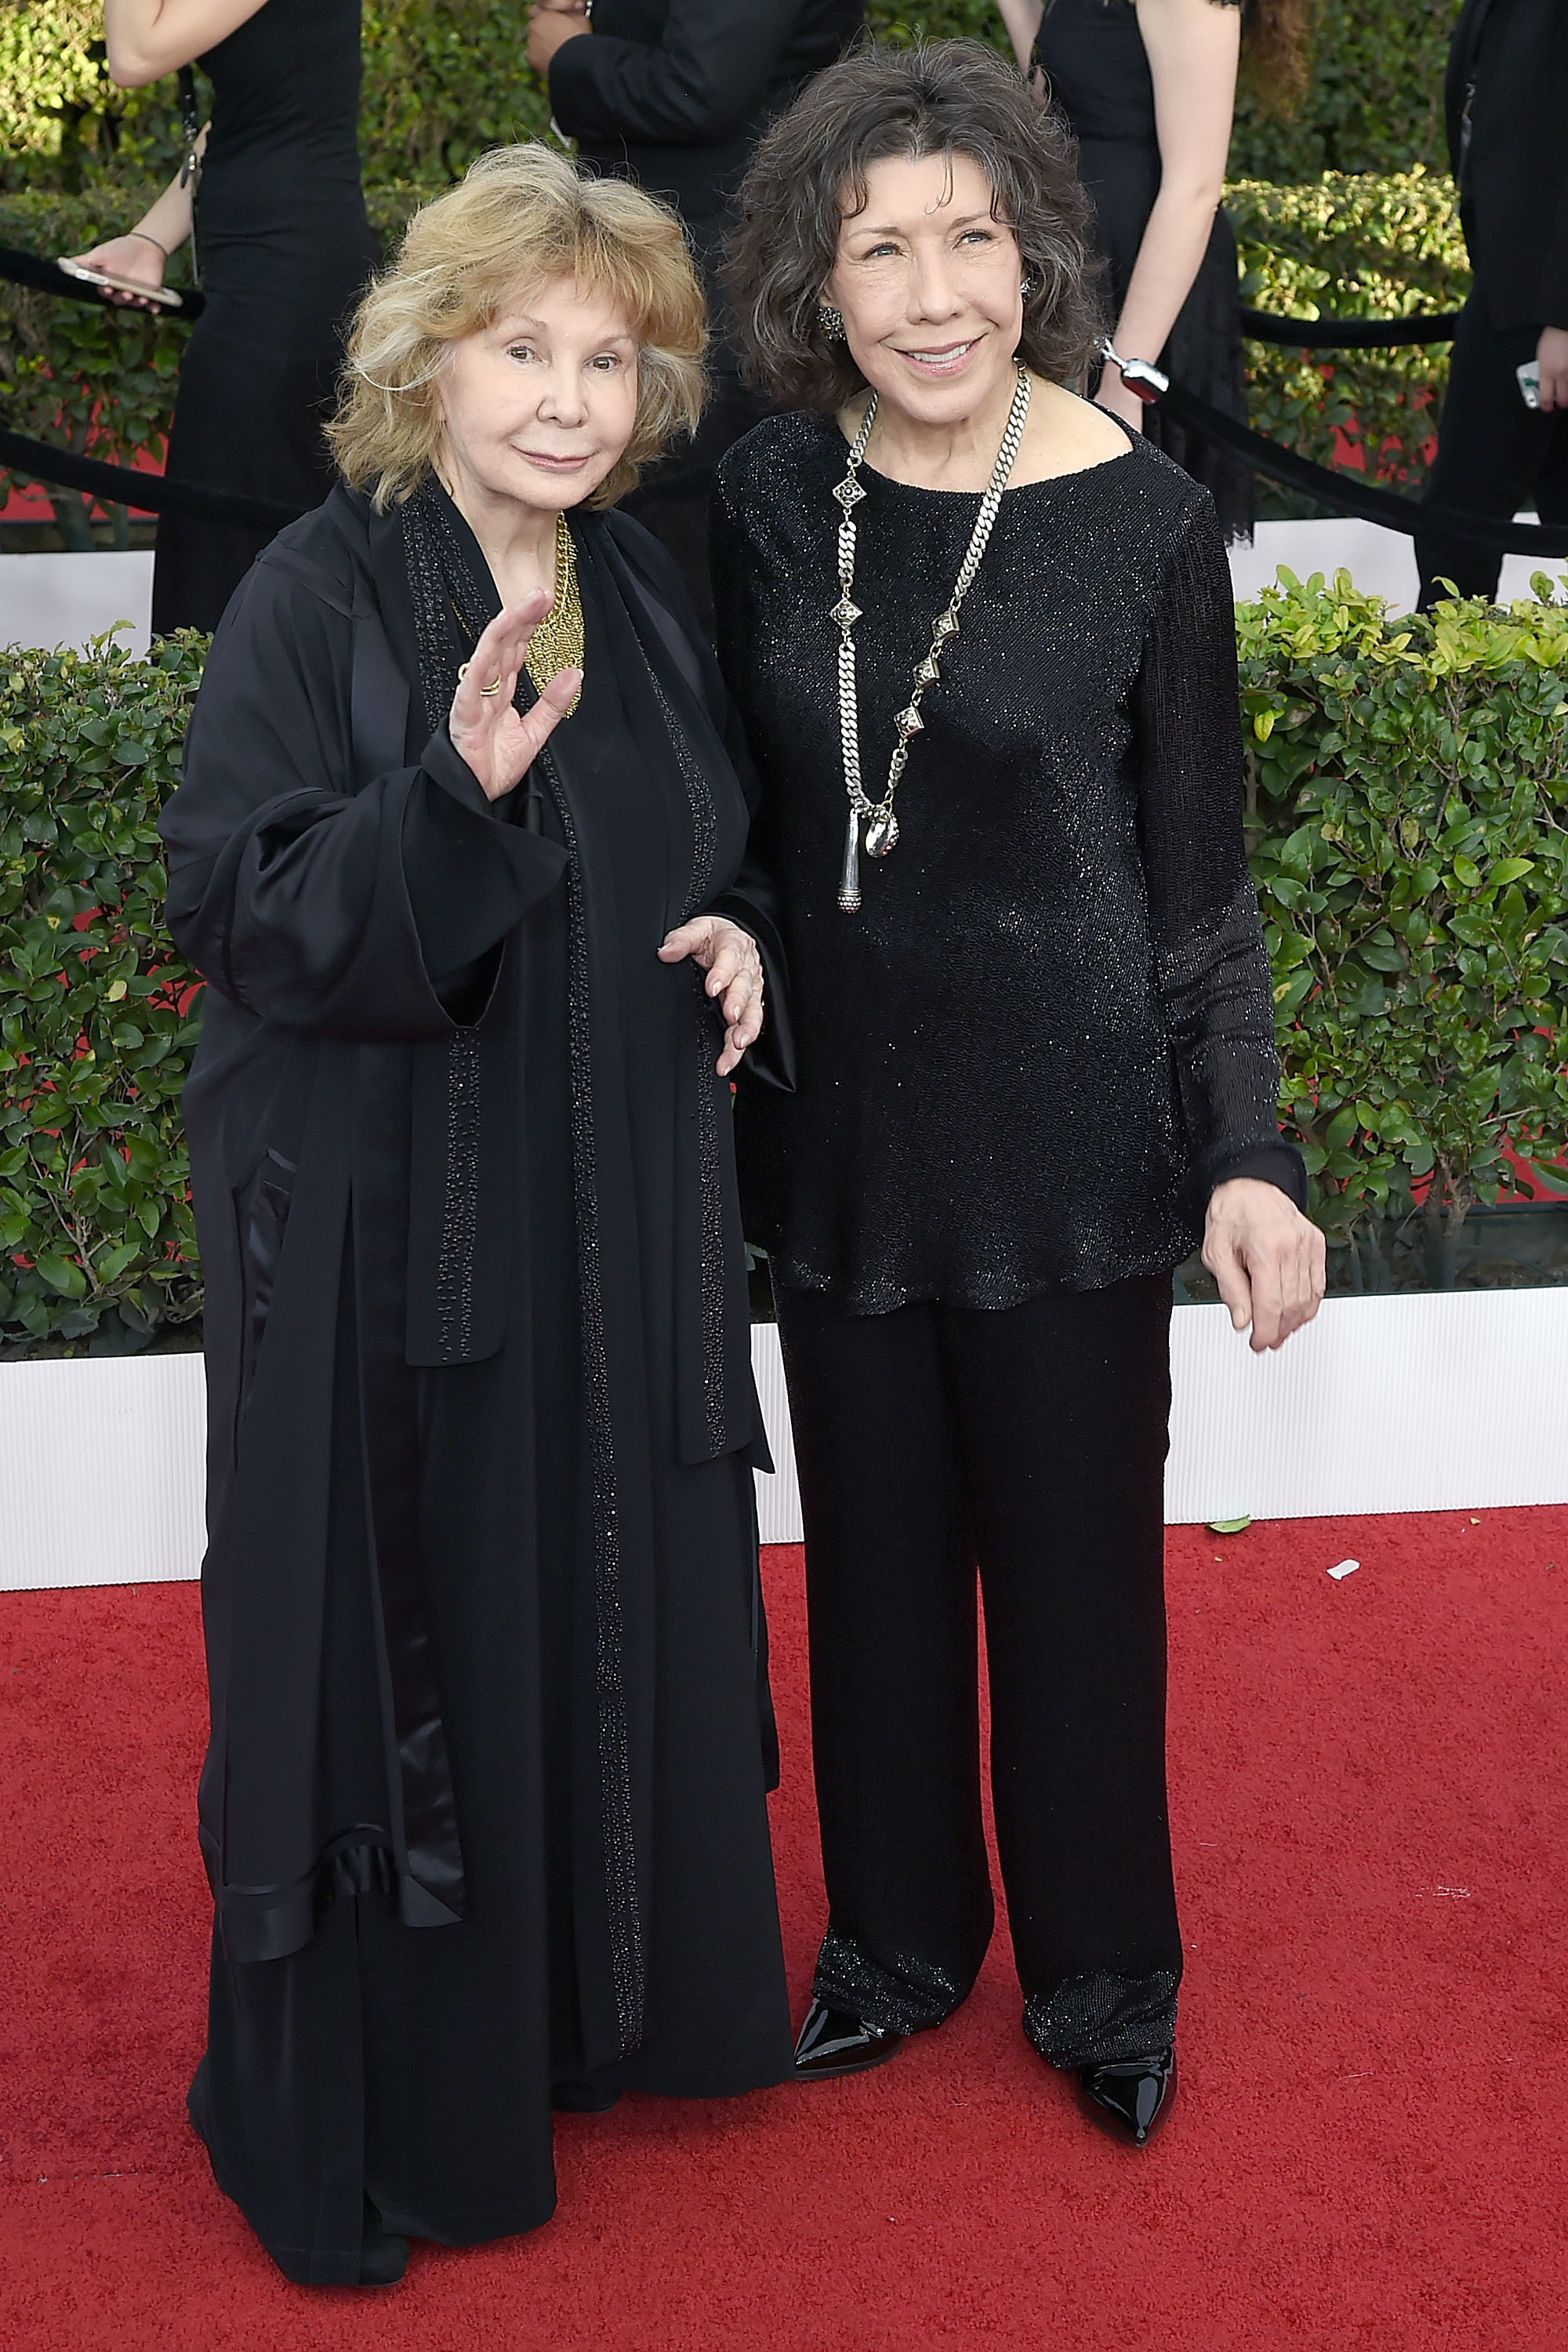 Lily Tomlin and Jane Wagner on the red carpet